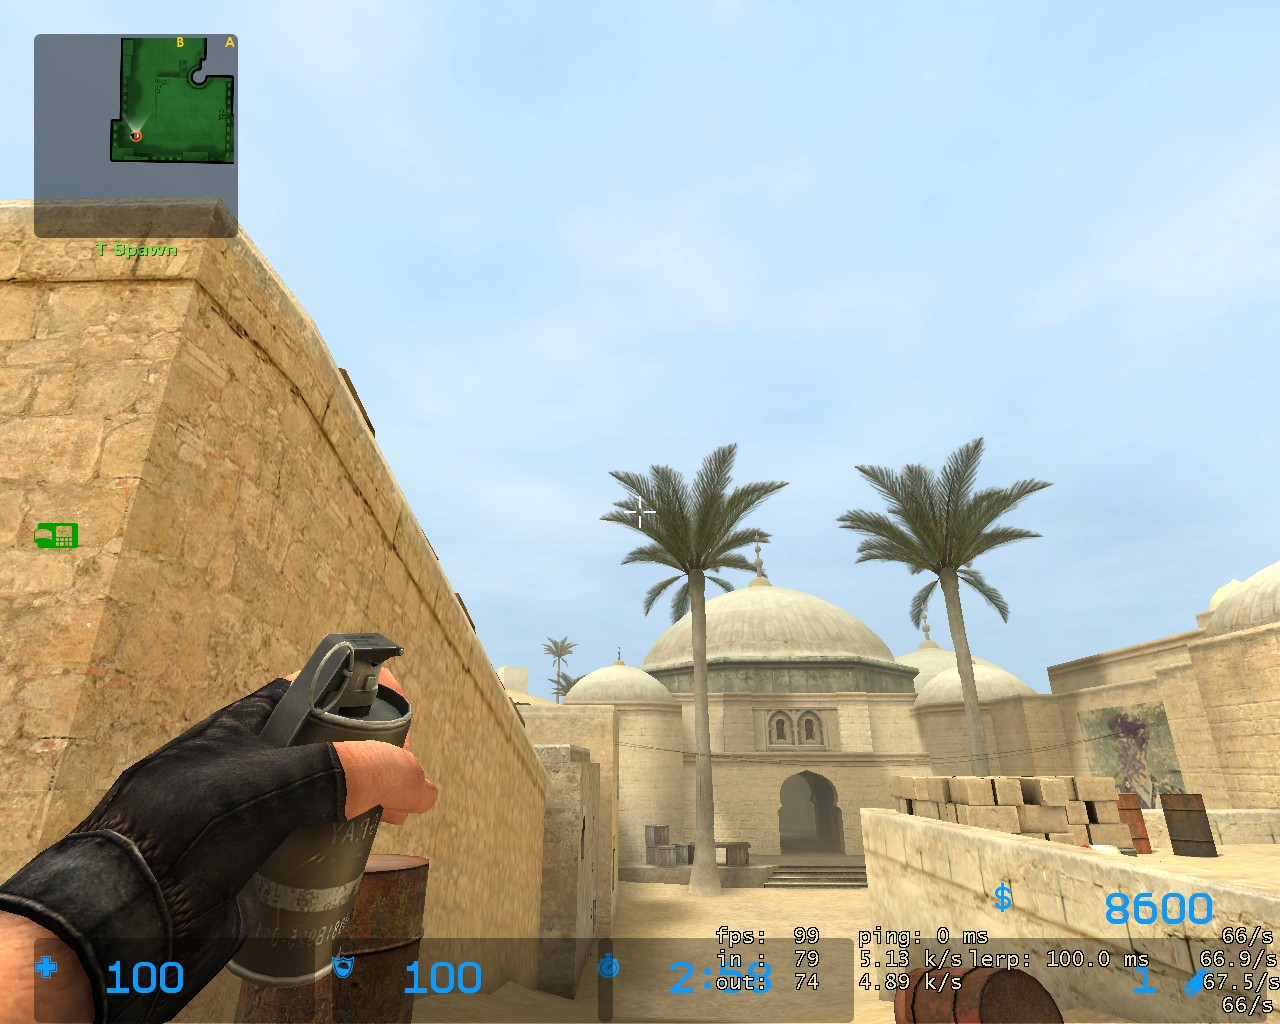 New BF2-de_dust2-spawn-plat-smoke-jpg